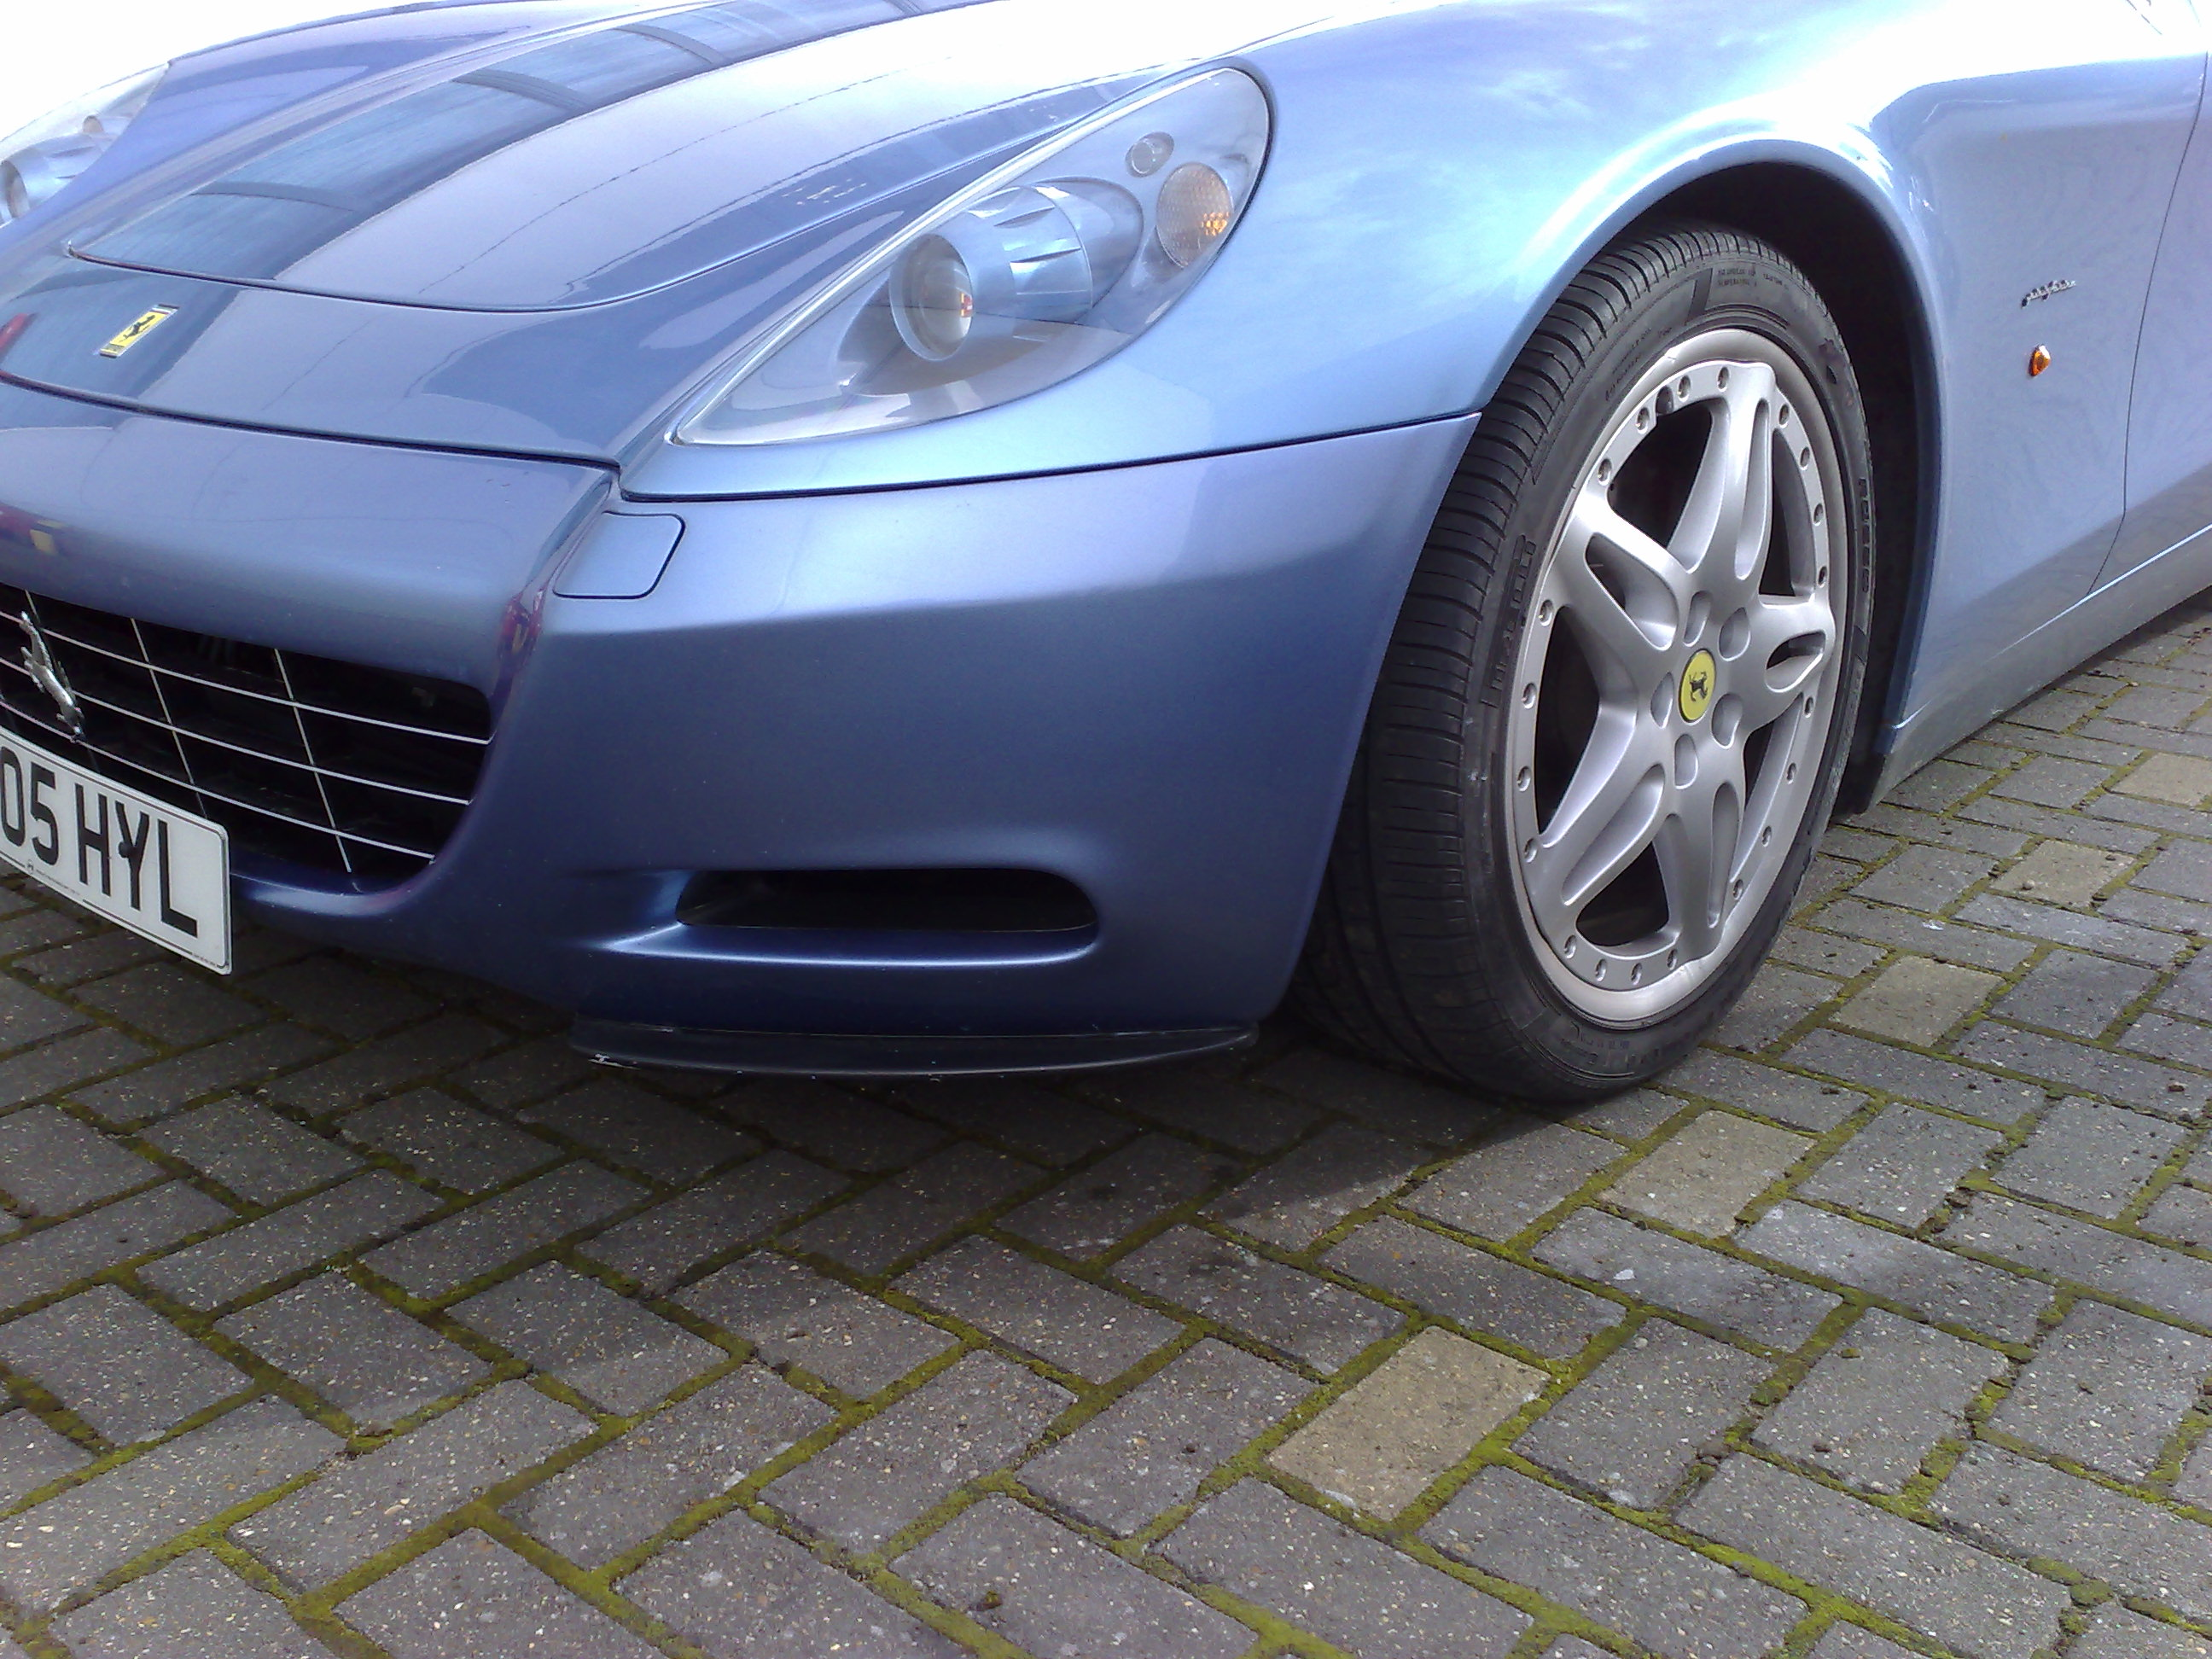 South West Londons best value in car body work and Alloy Wheels repair